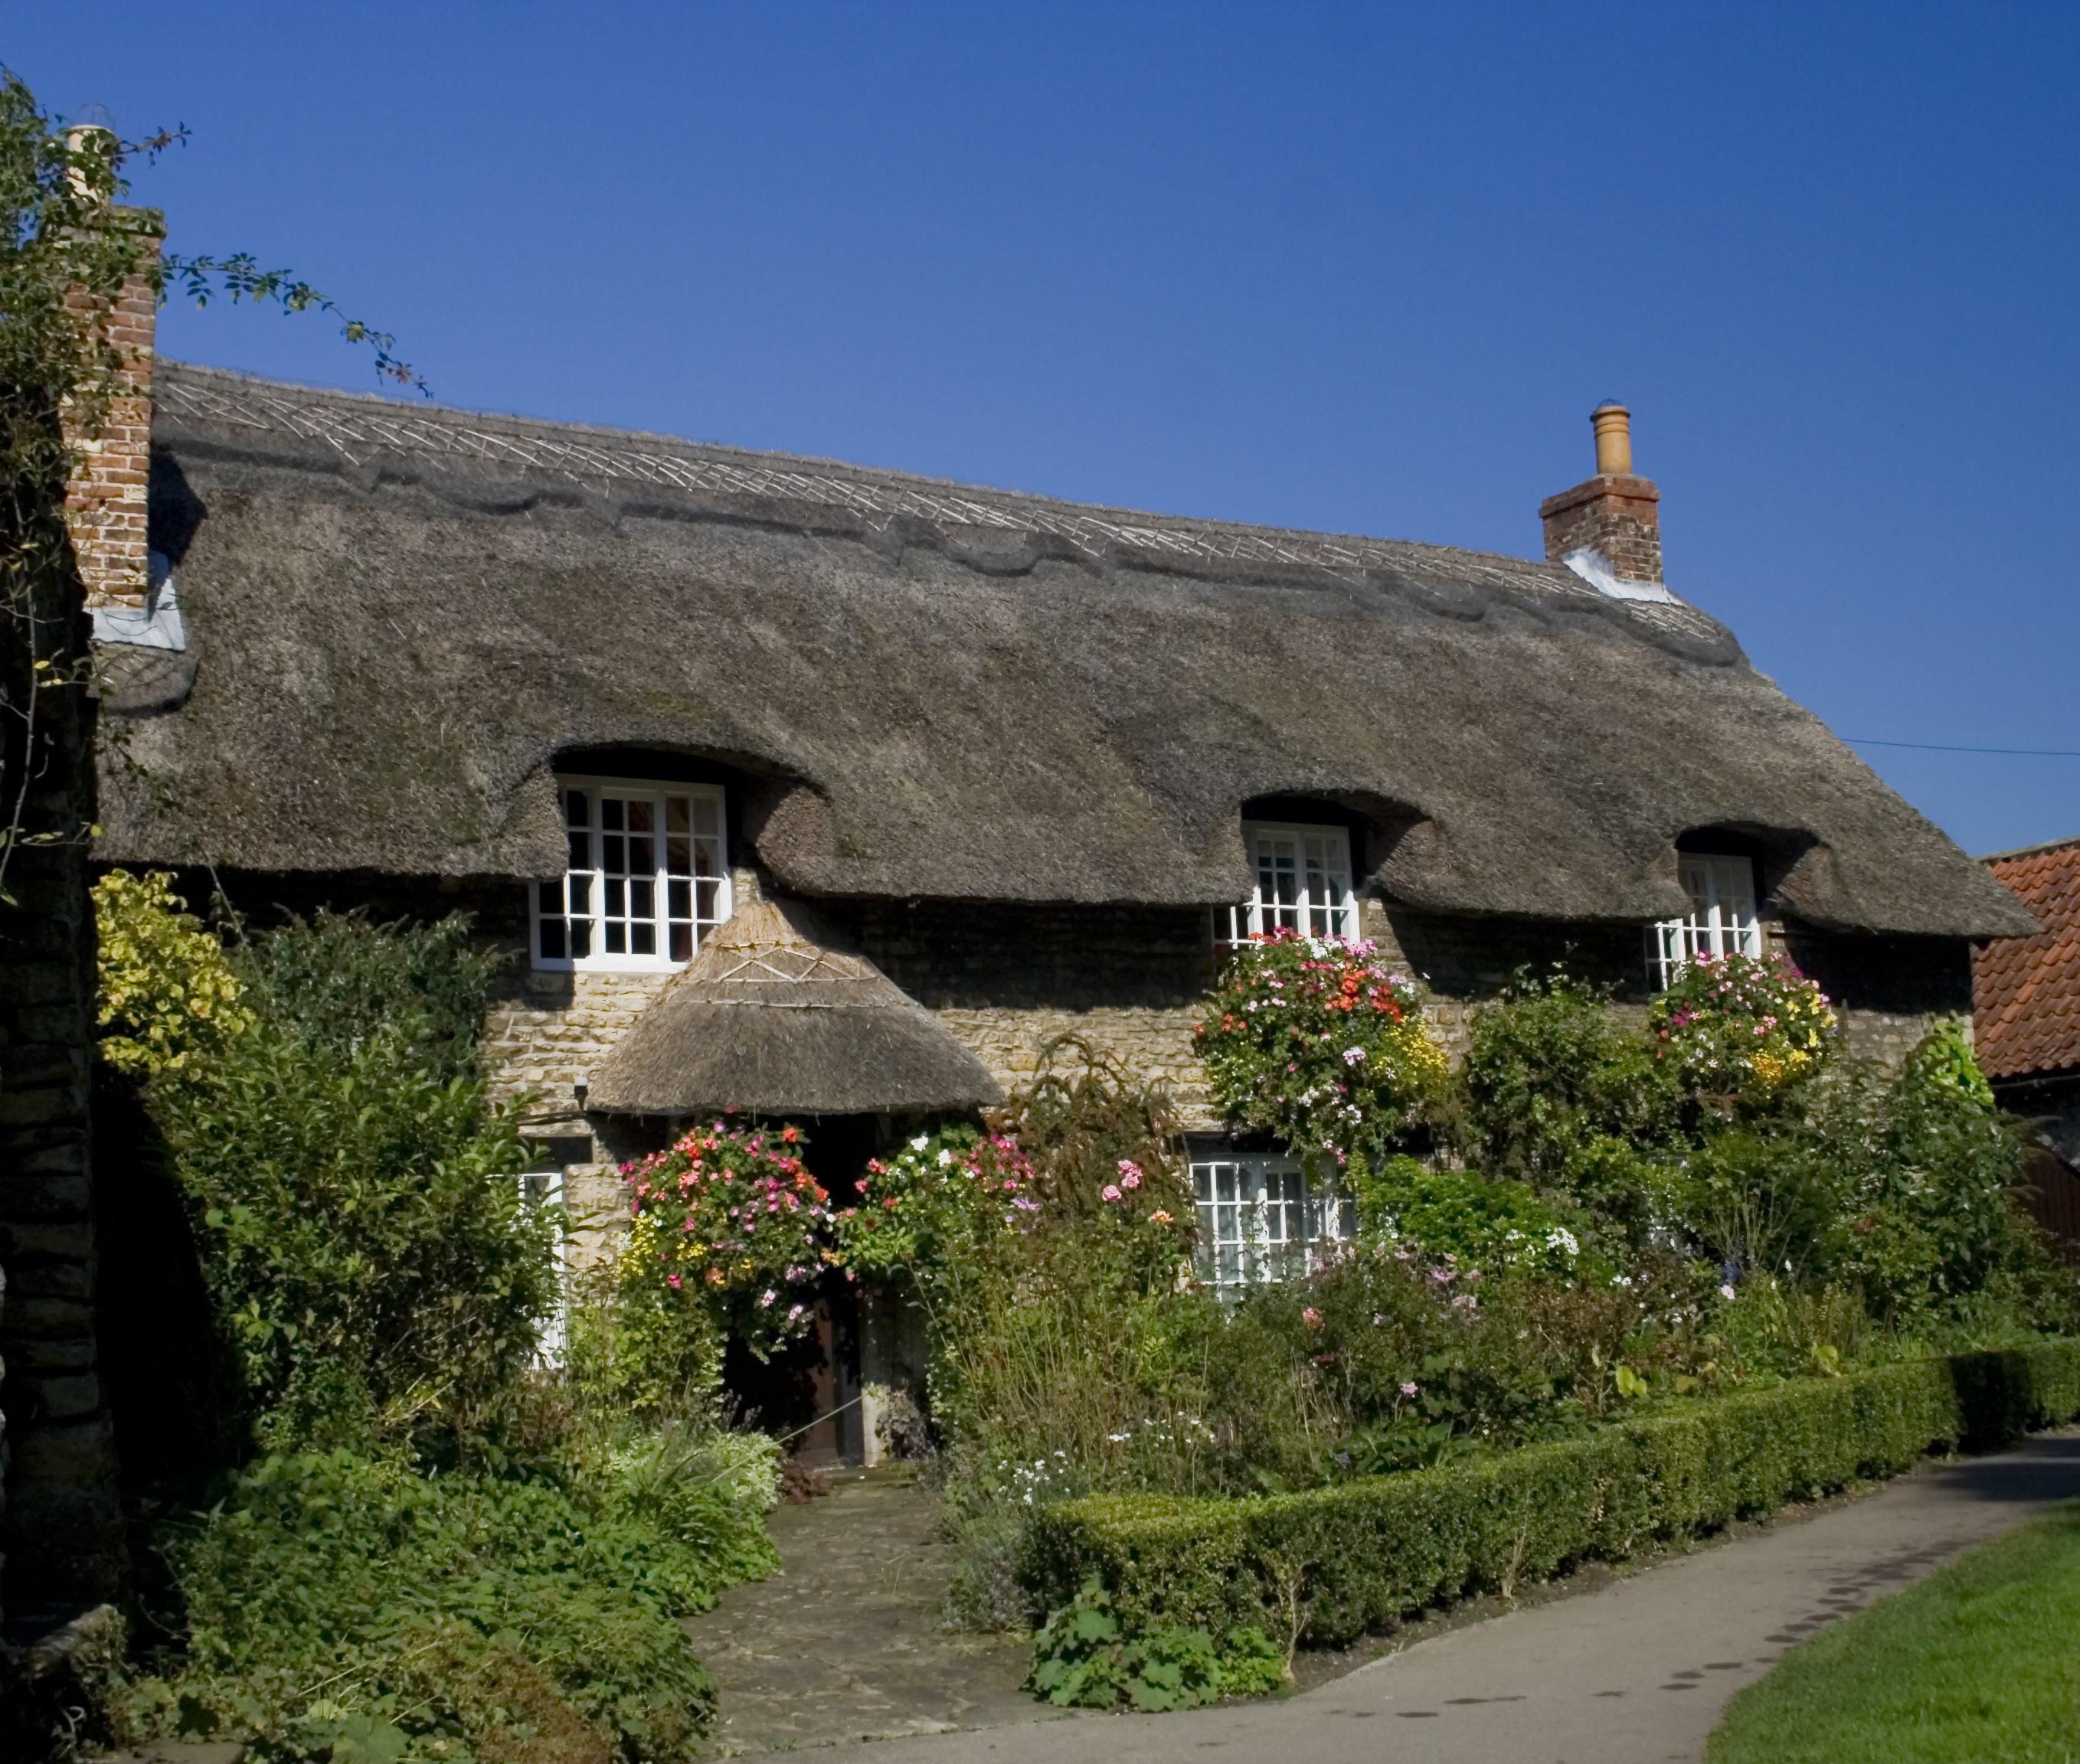 Le syndr me the holiday envie d un cottage en angleterre for Pictures of english country cottages